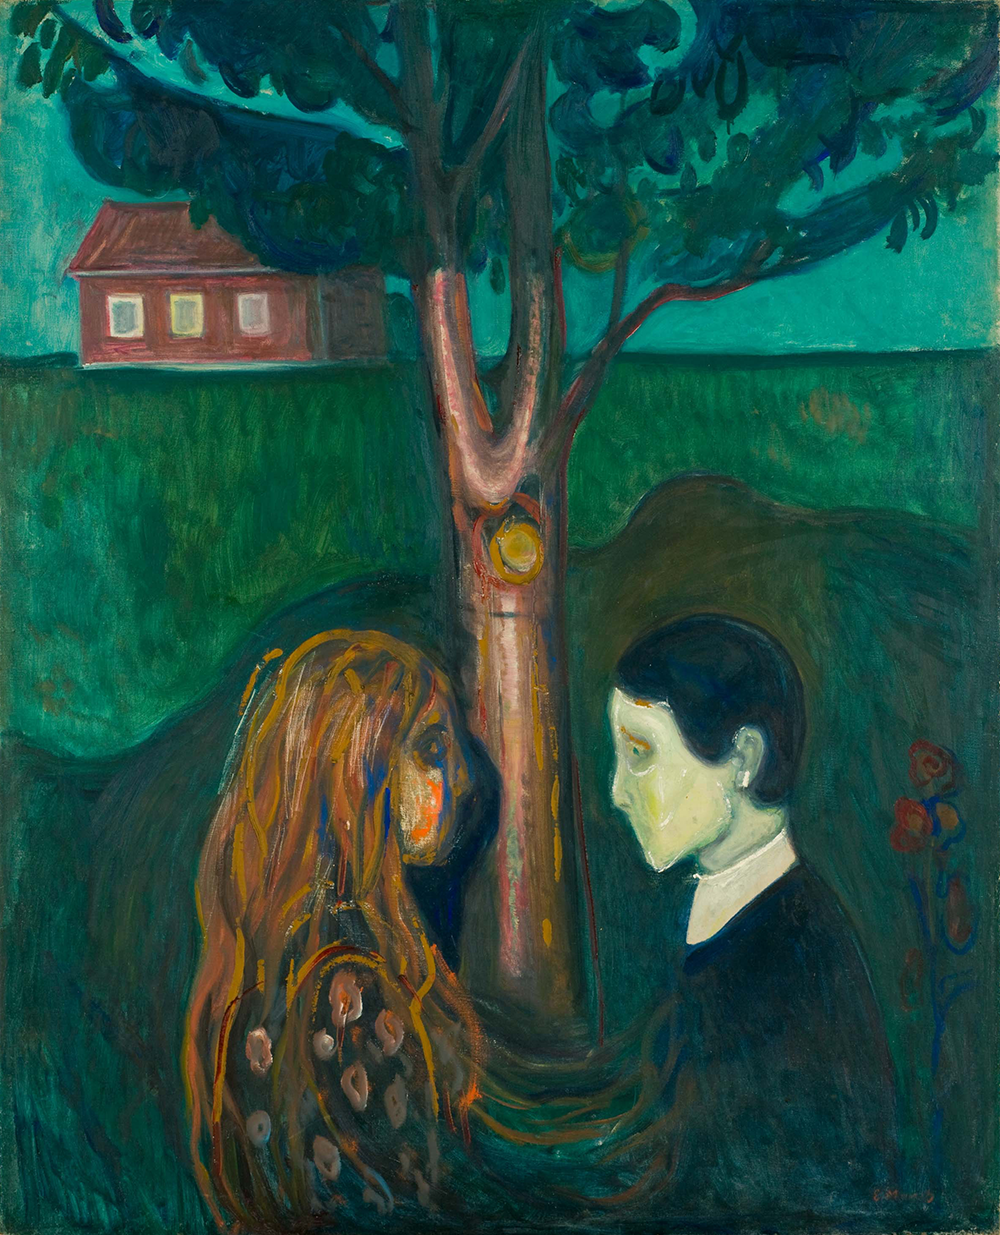 Painting of a man and woman standing under a tree with a field and house in the background